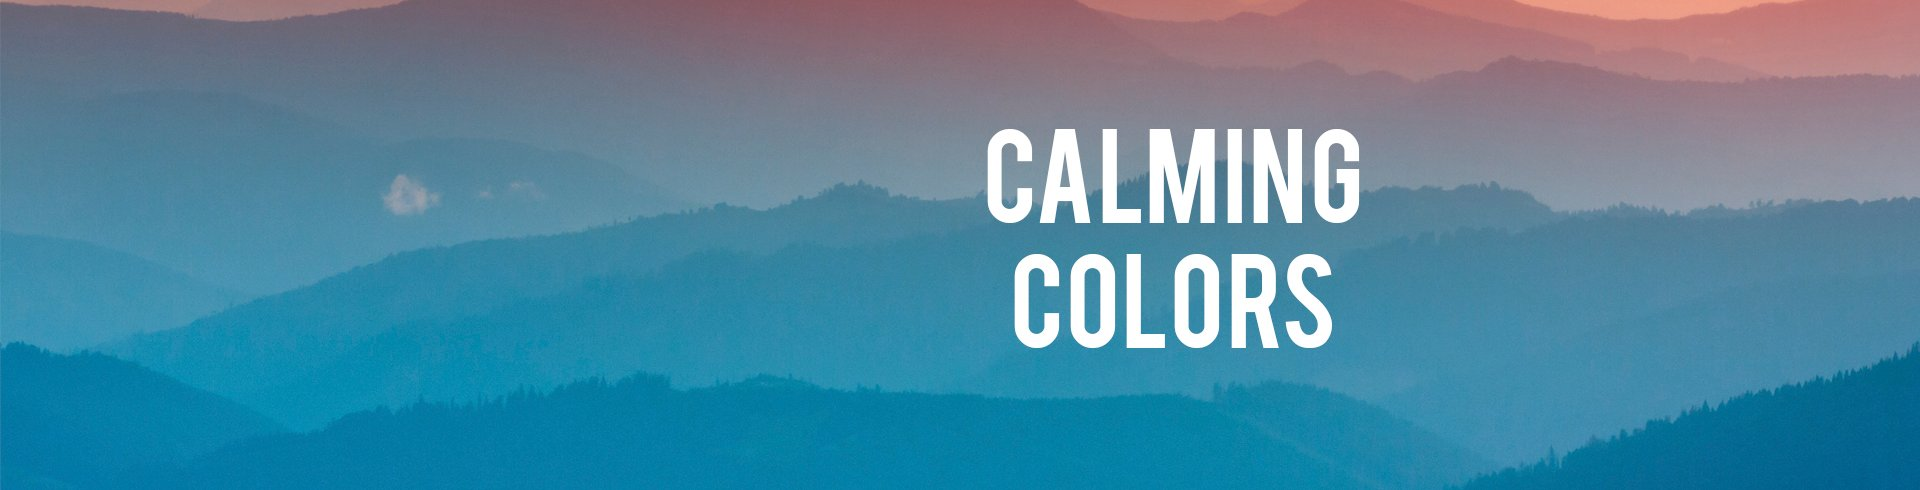 calming colors rc willey